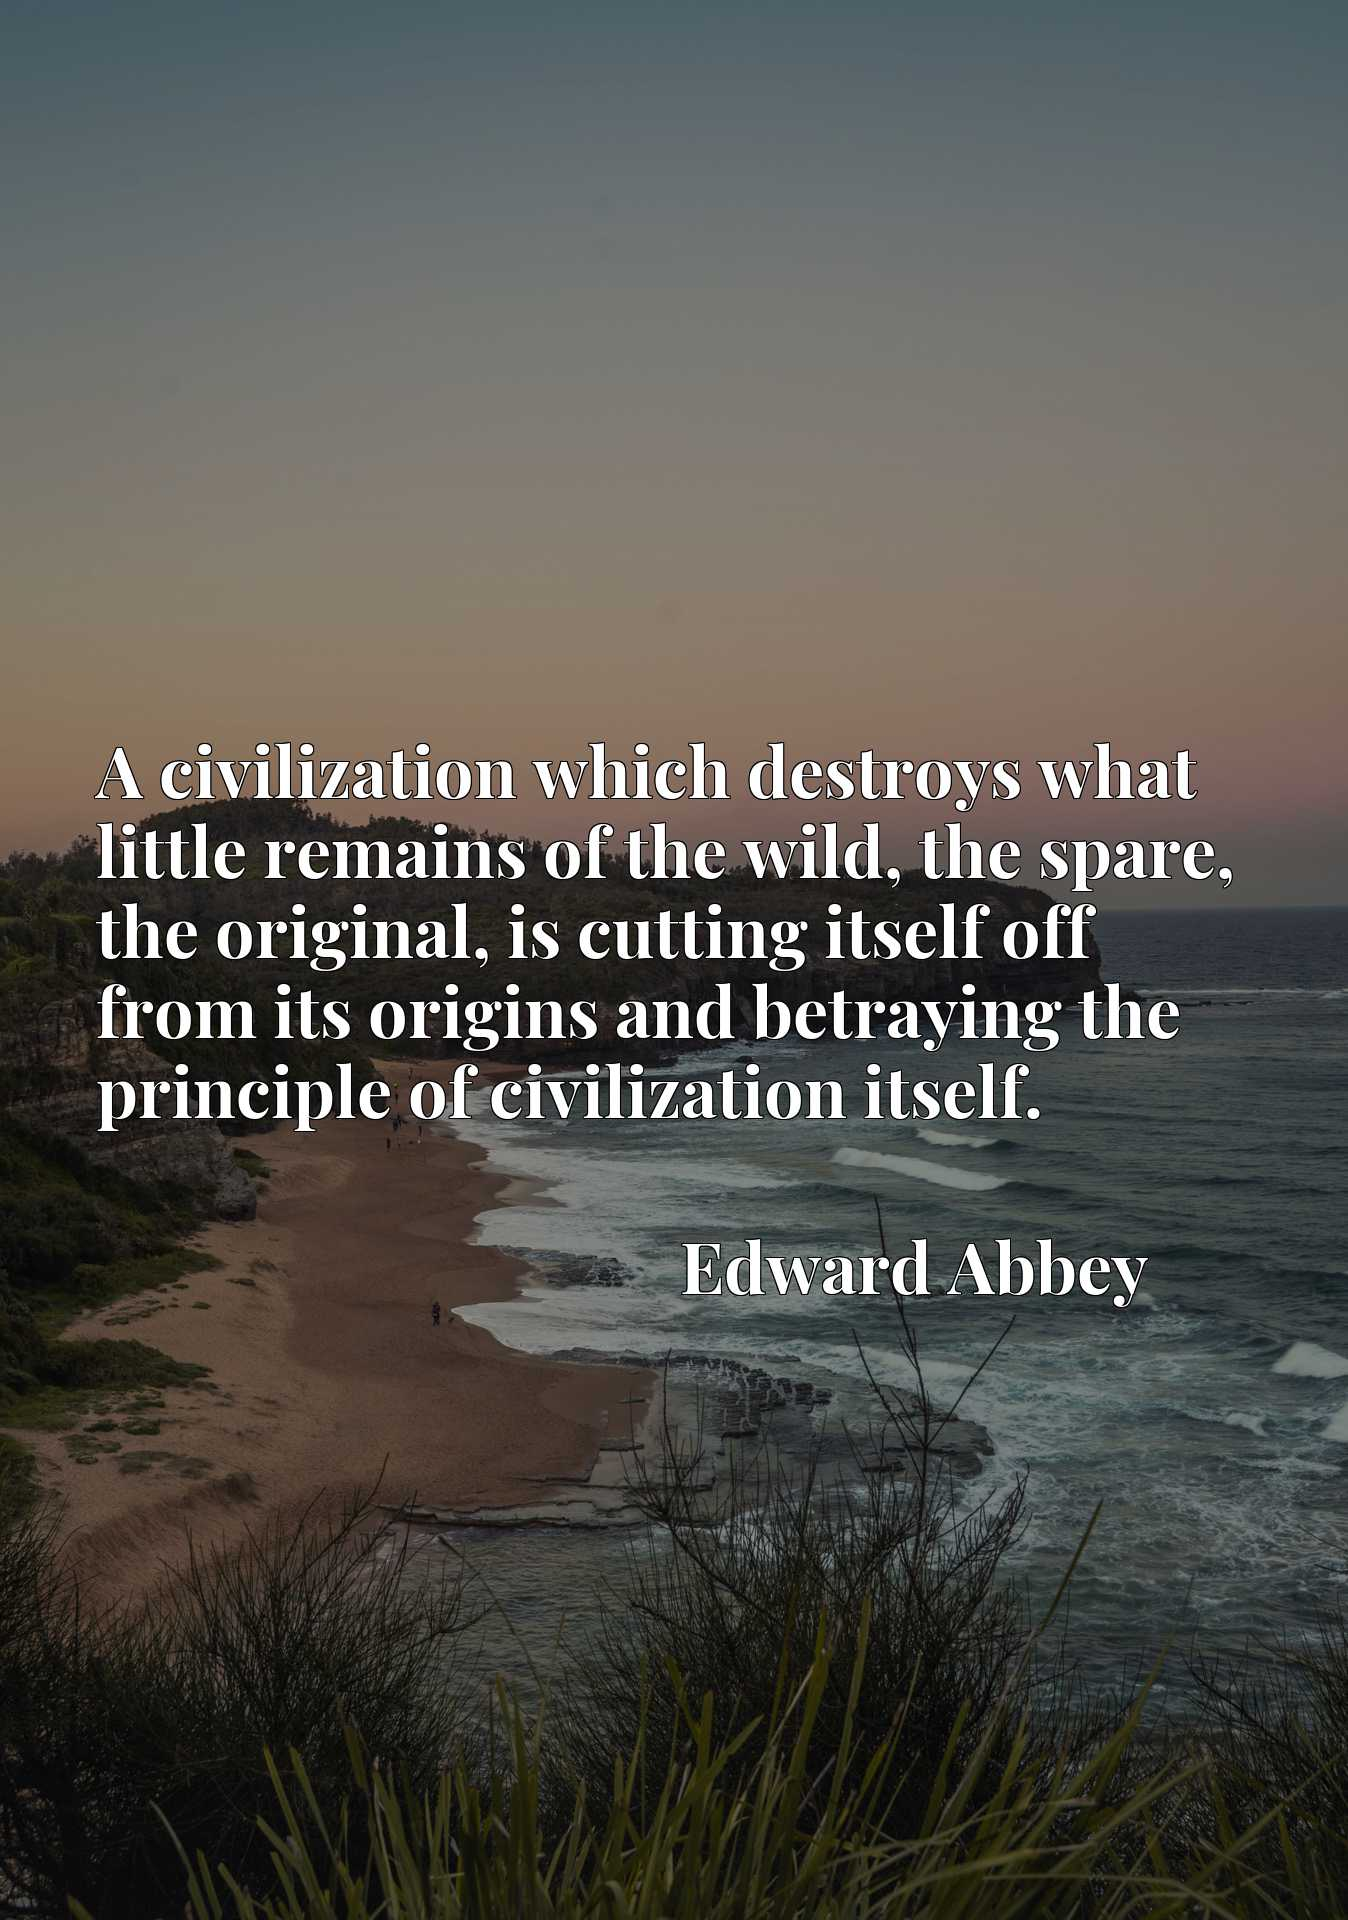 A civilization which destroys what little remains of the wild, the spare, the original, is cutting itself off from its origins and betraying the principle of civilization itself.